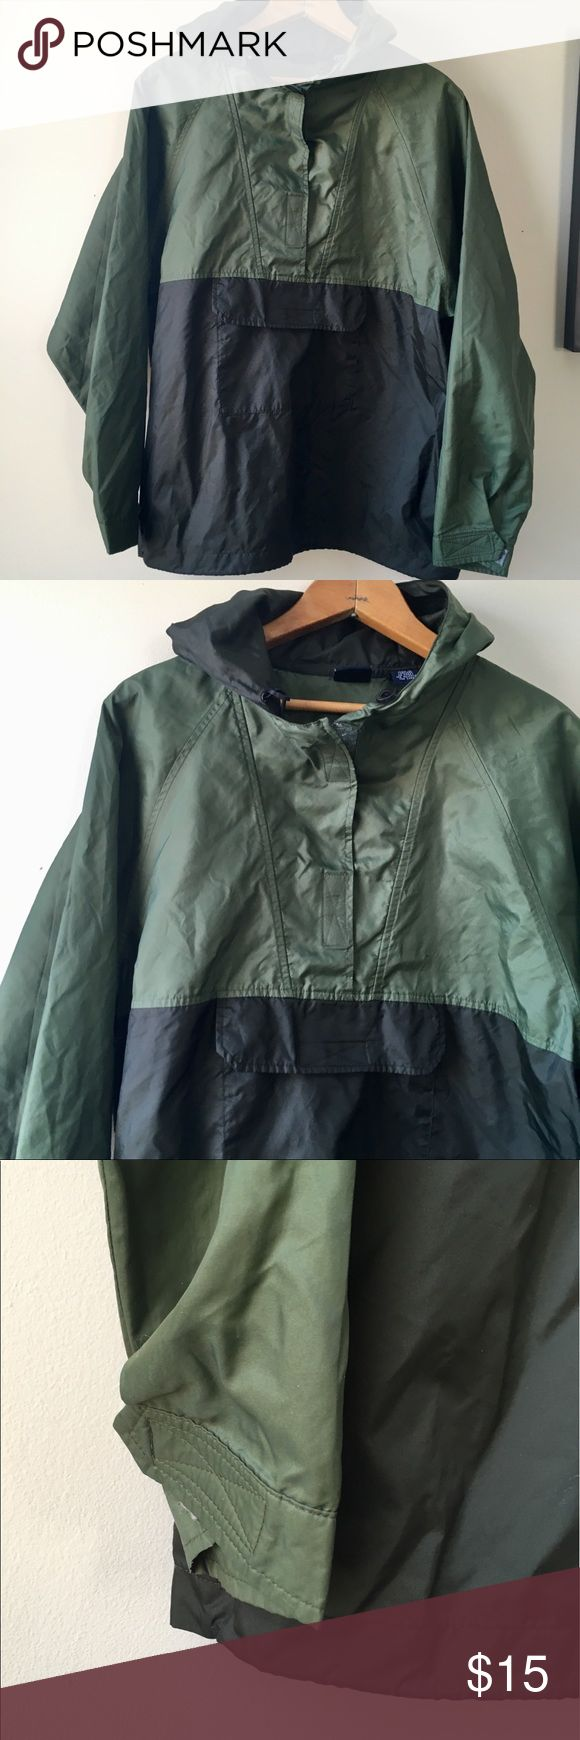 "GAP light rain jacket green GAP * nylon rain jacket * poncho * raincoat * green * front pocket * hood * boys size XXL * fits a women's small or medium  * I am typically a size small and I bought this for myself and it fits oversized on me * approx measures 20"" across chest and 25"" long * EUC GAP Jackets & Coats"